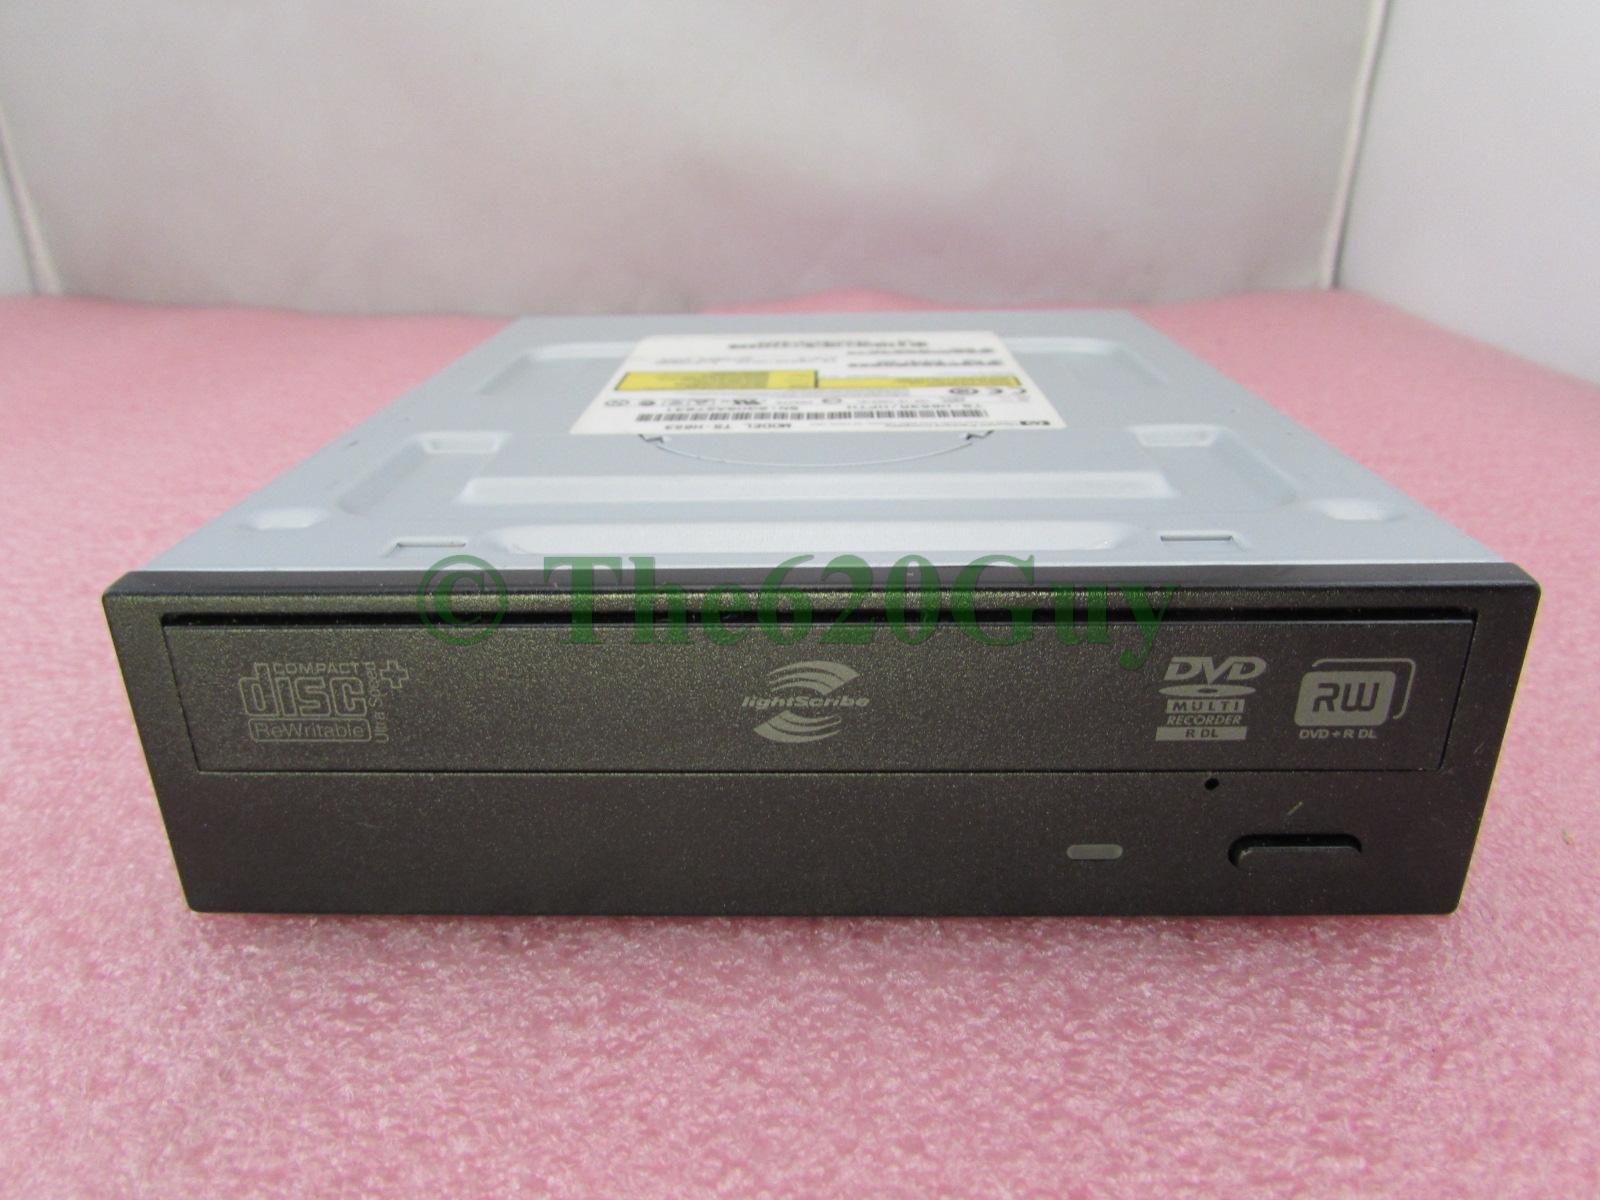 HP DVD±RW Dual Layer 575781-500 581600-001 SATA Optical Drive Samsung TS-H653 by HP